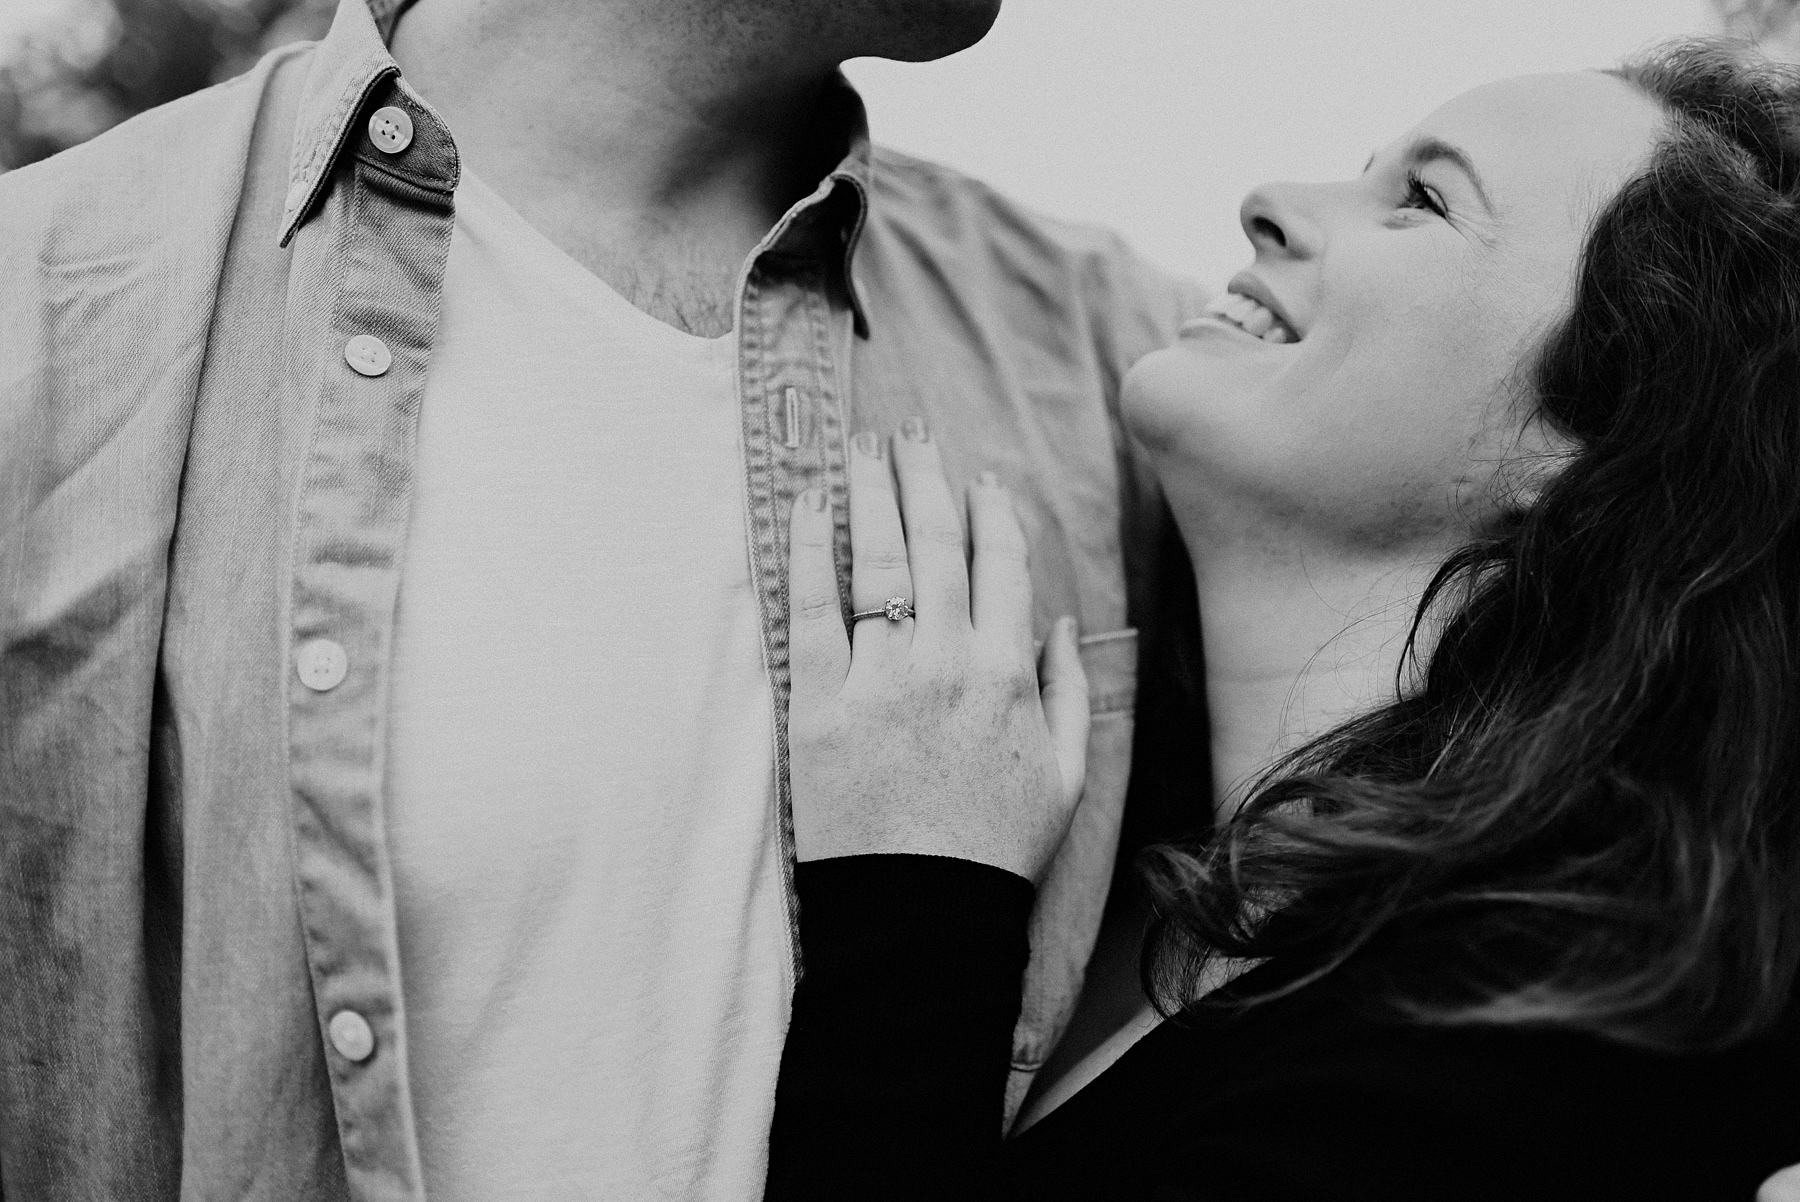 A black and white intimate portrait of a couple in Richmond park. She is looking up at him, smiling, and showing off her engagement ring on his chest.